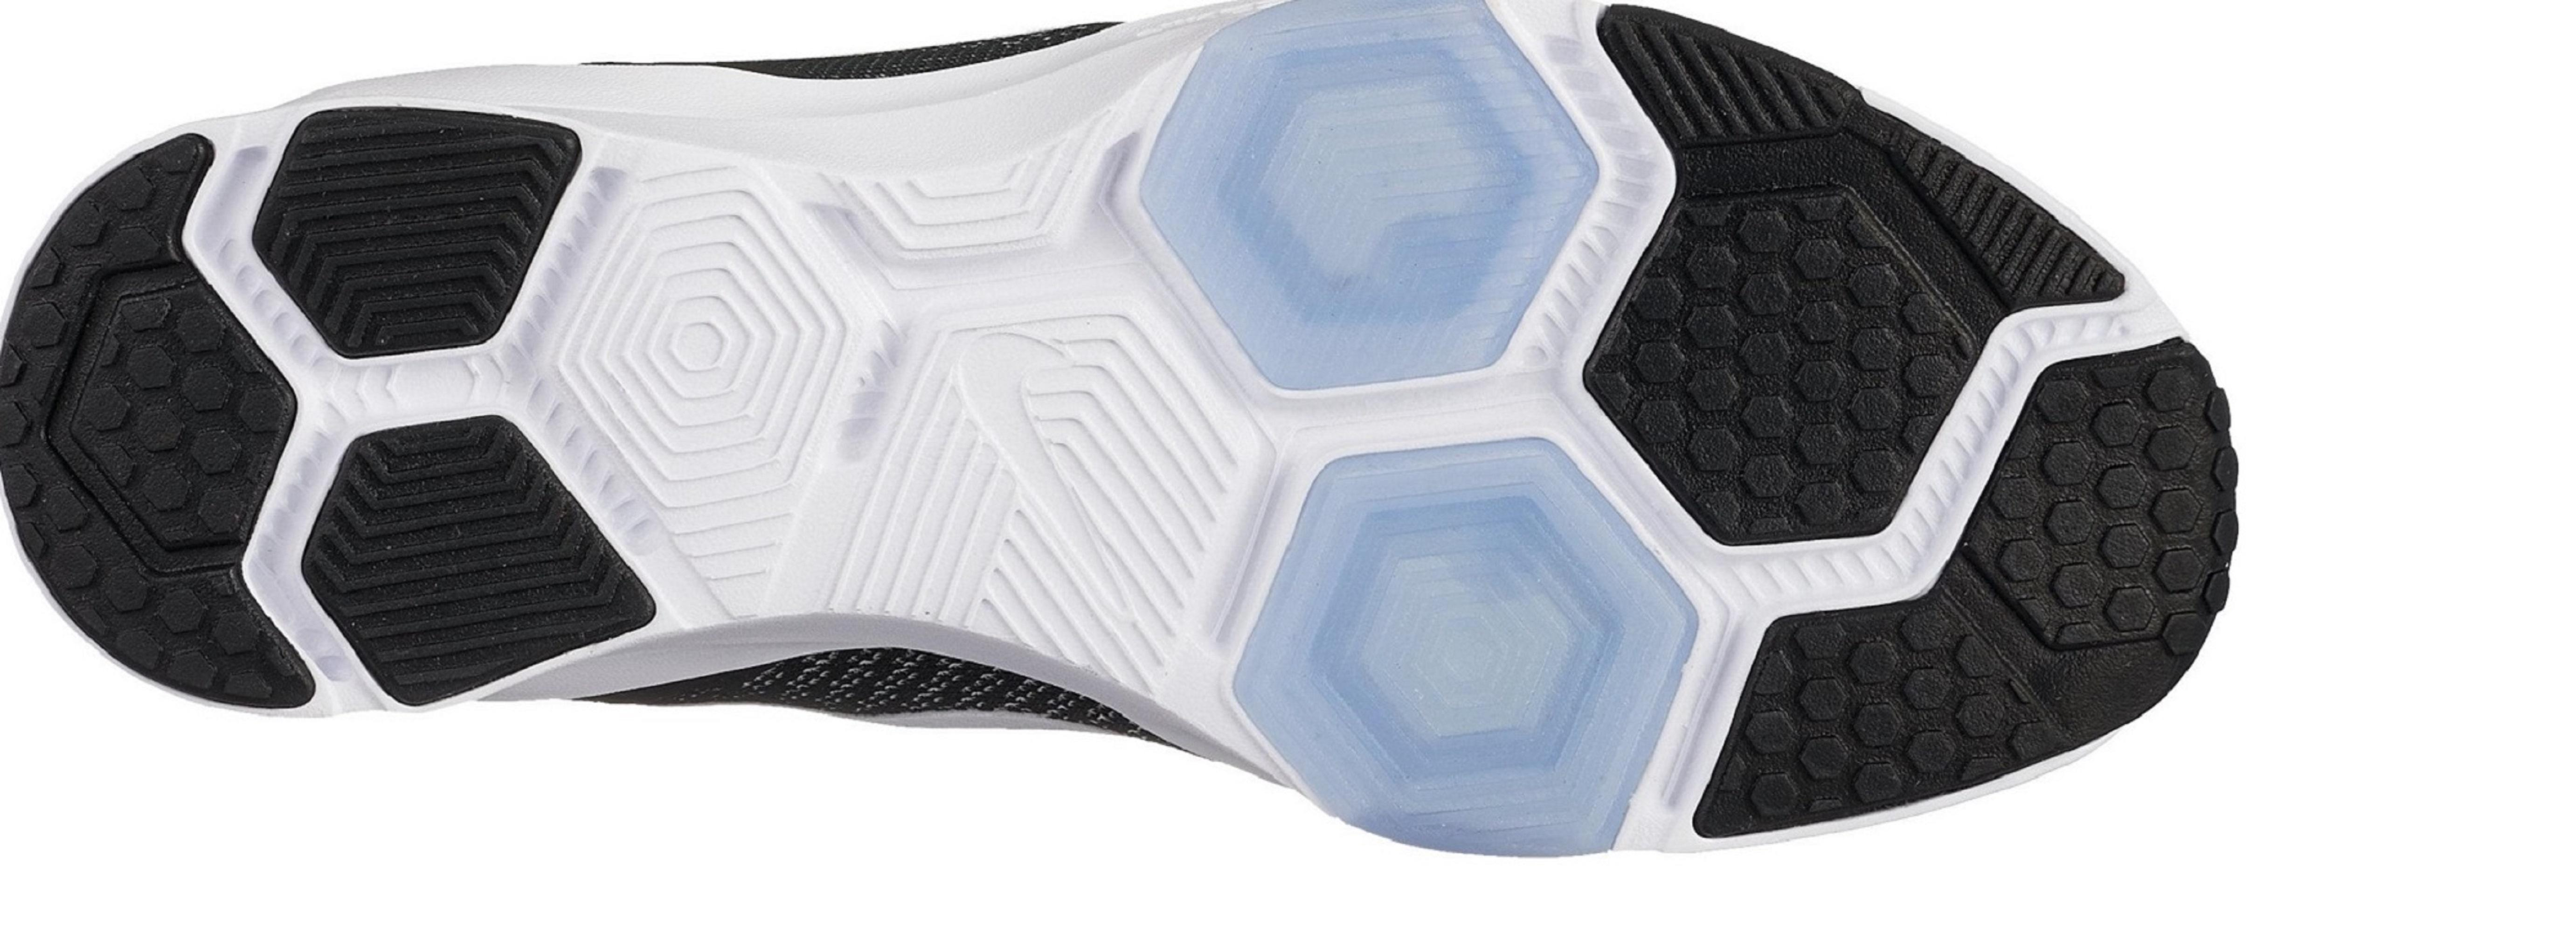 Conditionner Nike Chaussures Et Fitness Femme Zoom Blanc Noir Y29EDIWH